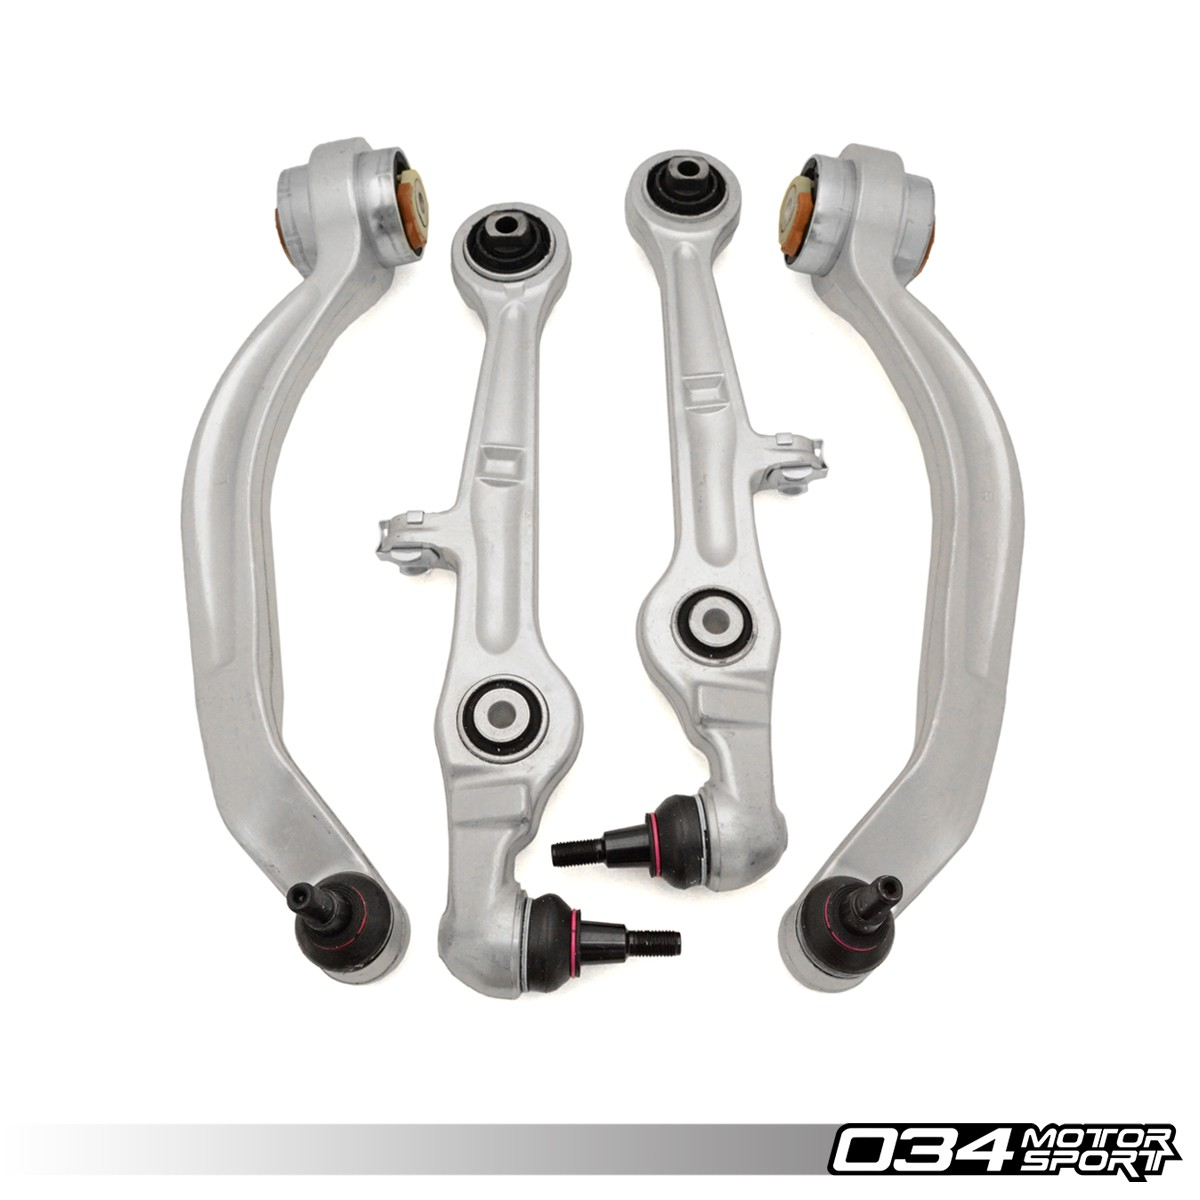 density line lower control arm kit b6 b7 audi a4 s4 rs4 034 401 rh store 034motorsport com Audi A4 Service Manual 2001 Audi A4 Manual